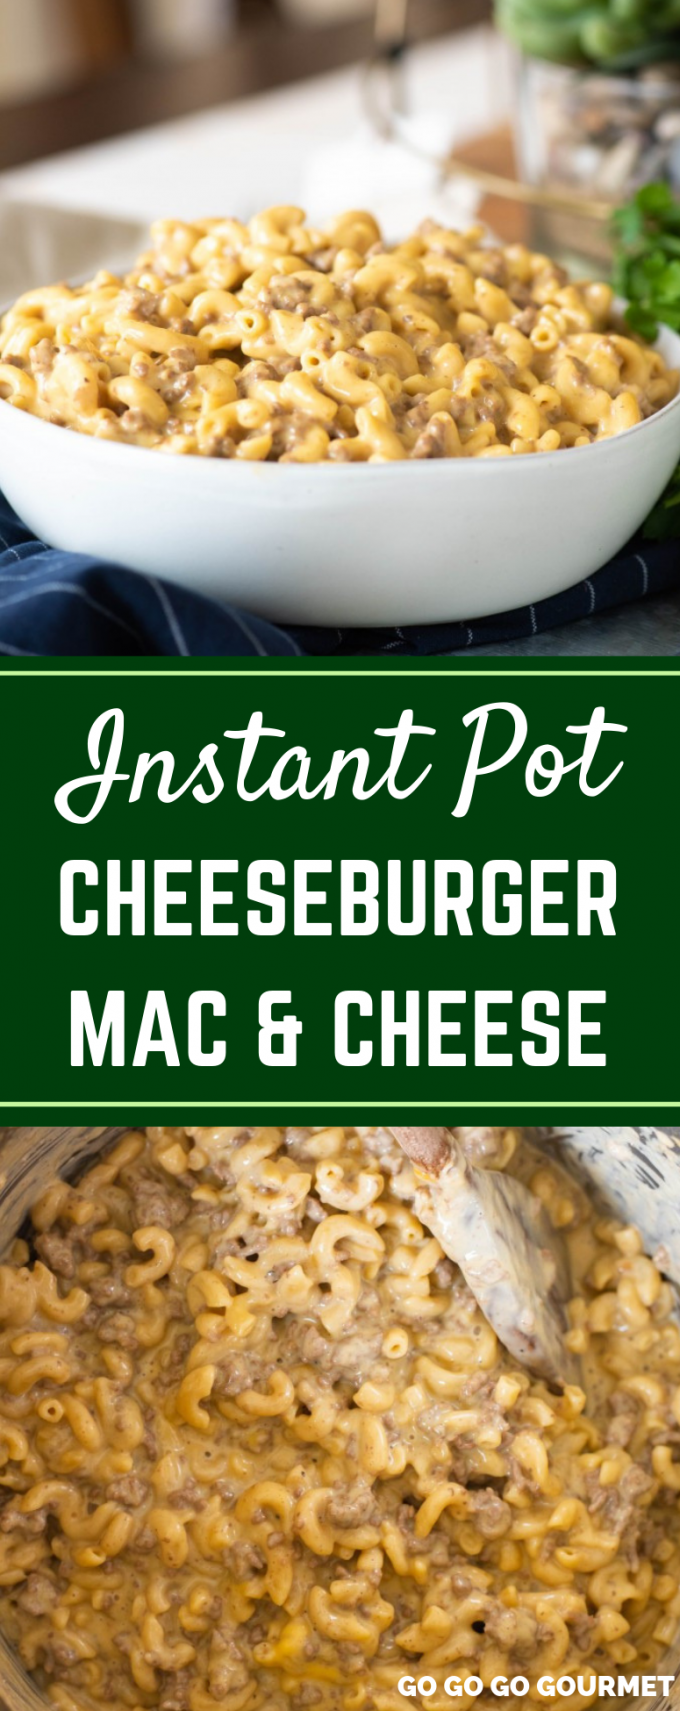 This easy Instant Pot Cheeseburger Mac and Cheese is a homemade version of your favorite boxed meal. Made with a mixture of Velveeta and cheddar cheese, this casserole is sure to become one of your family's new favorite dinners! #gogogogourmet #instantpotcheeseburgermac #cheeseburgermacandcheese #copycatrecipes #easydinnerrecipes #easyinstantpotrecipes